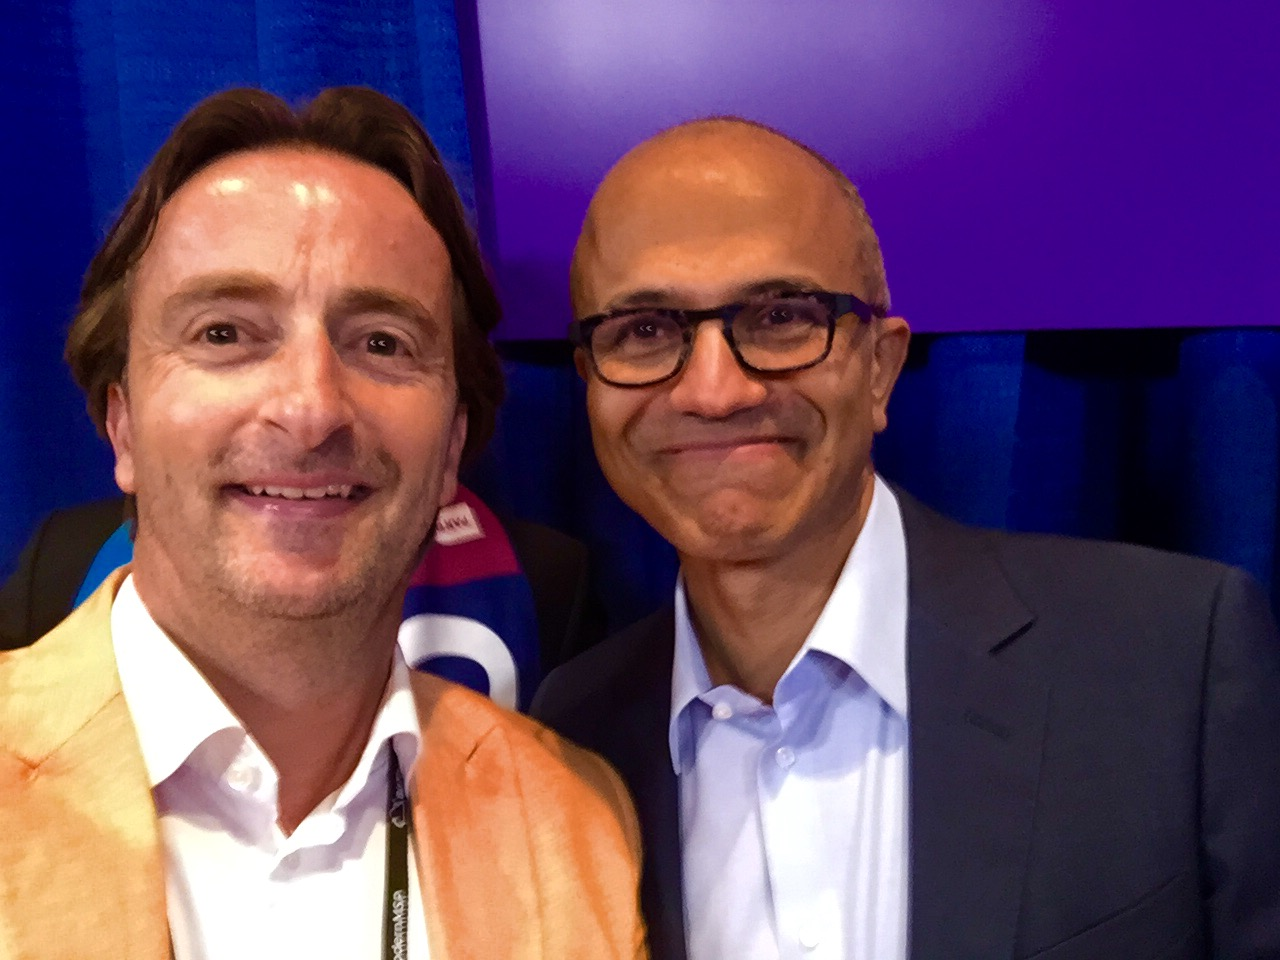 Caase.com Victor Jan Leurs Microsoft Satya Nadella